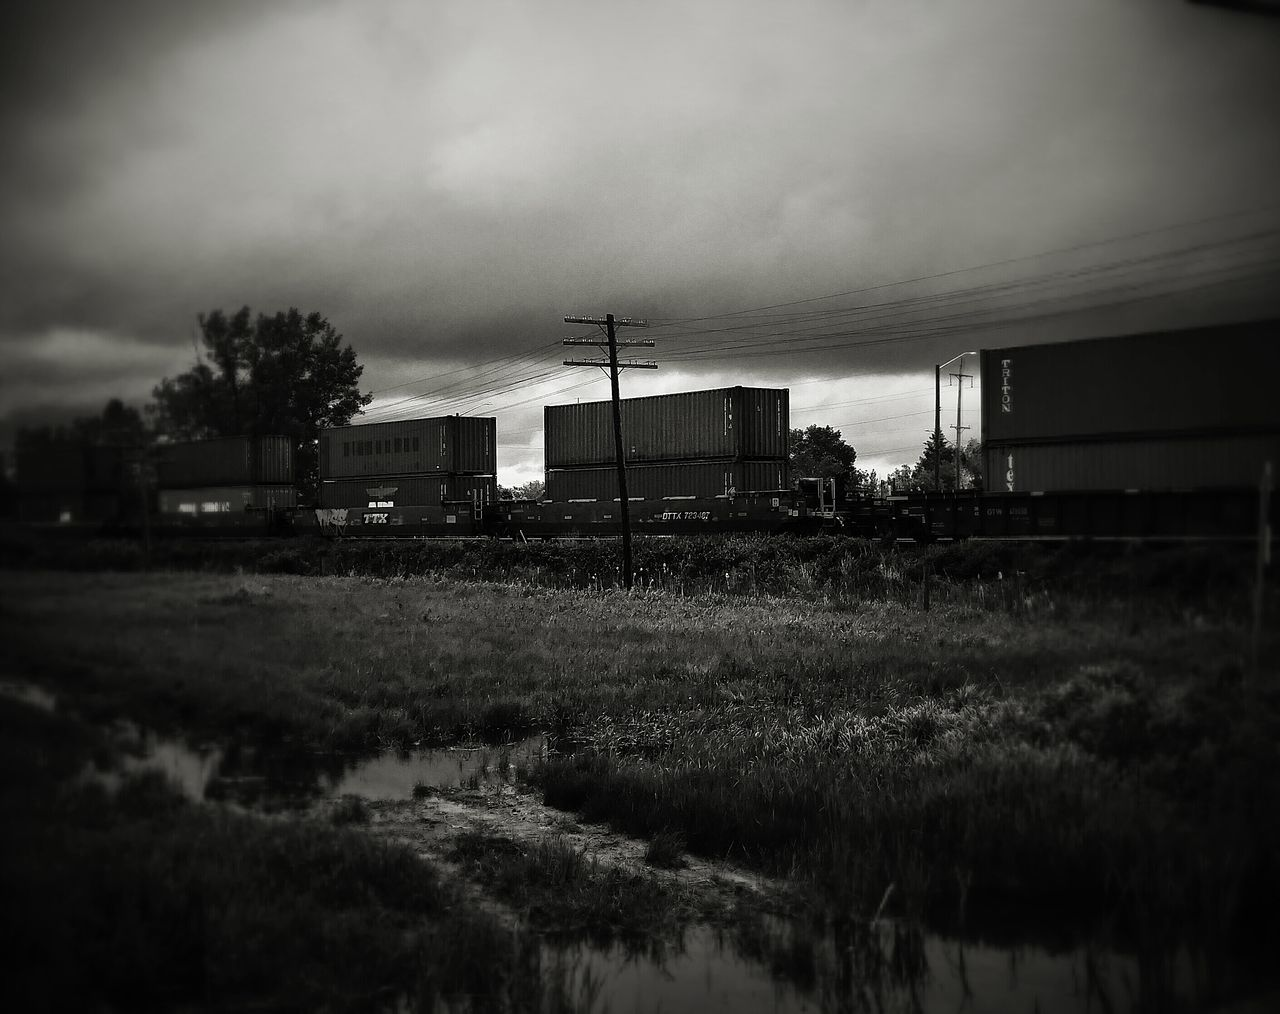 transportation, sky, no people, freight transportation, field, outdoors, built structure, day, architecture, factory, grass, tree, nature